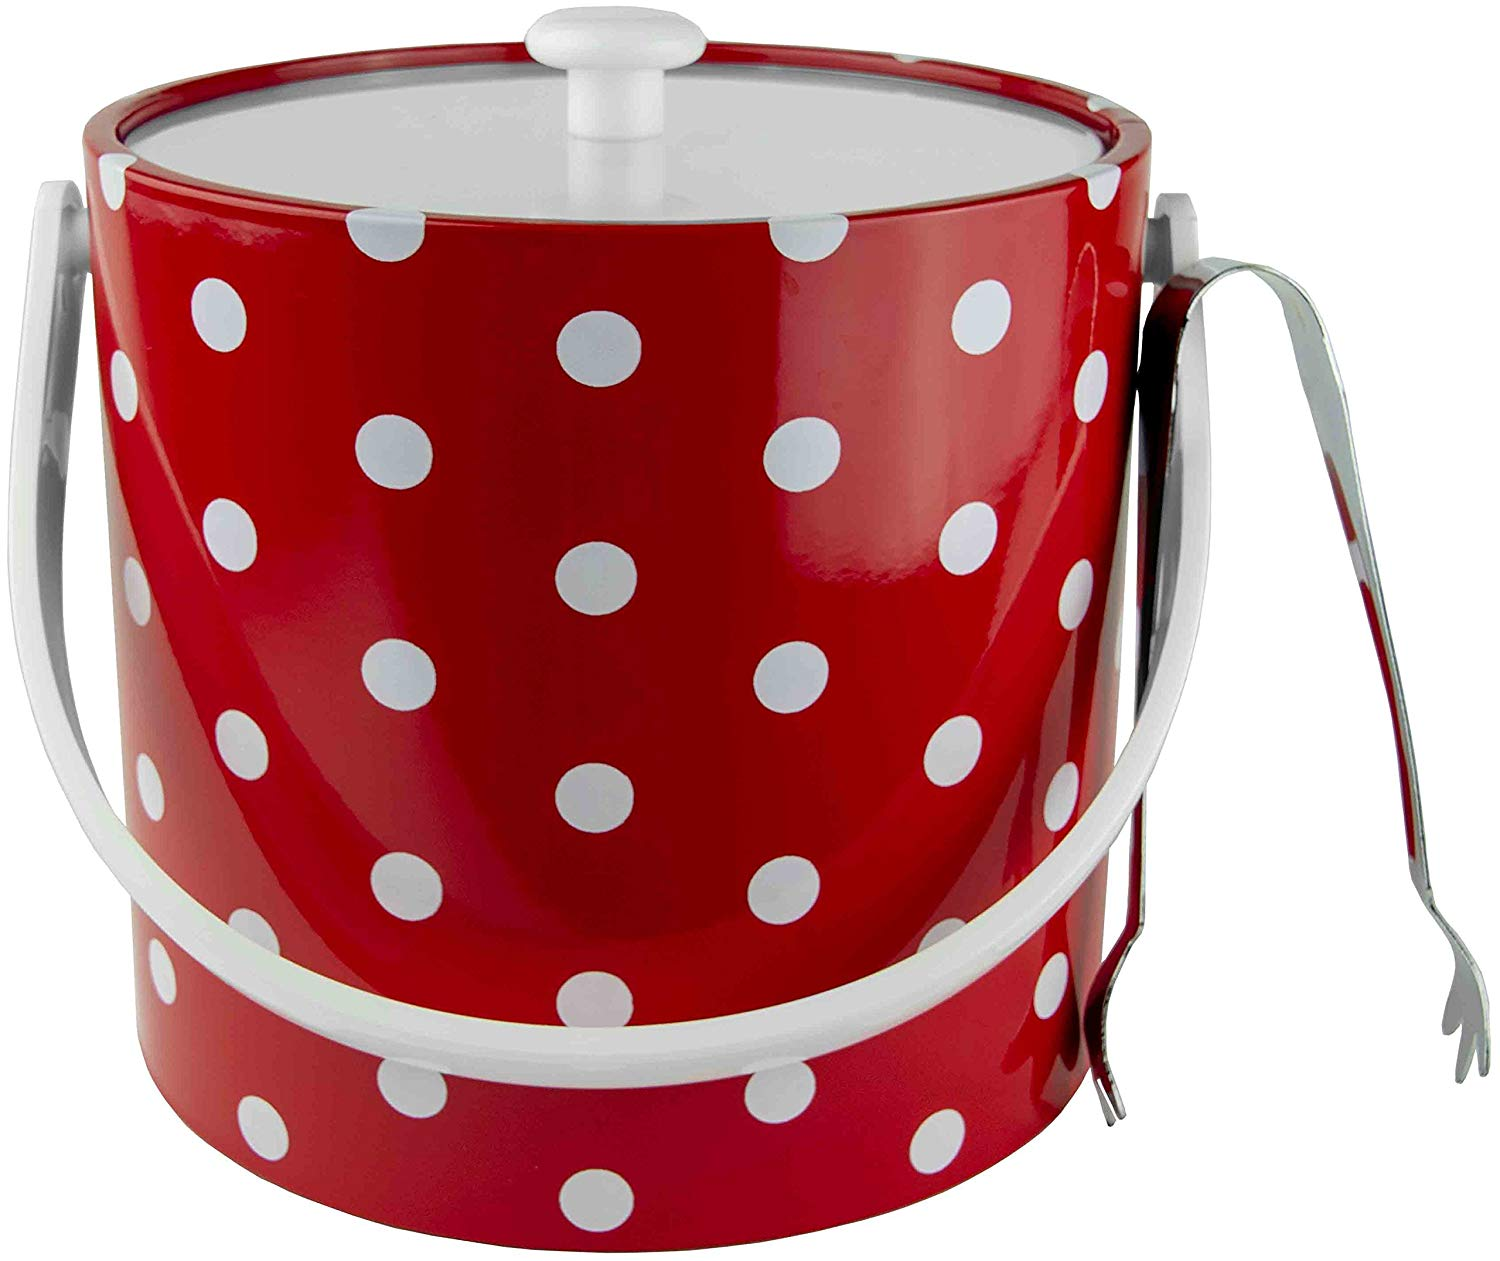 Hand Made In USA Red With White Polka Dots Double Walled 3-Quart Insulated Ice Bucket With Bonus Ice Tongs